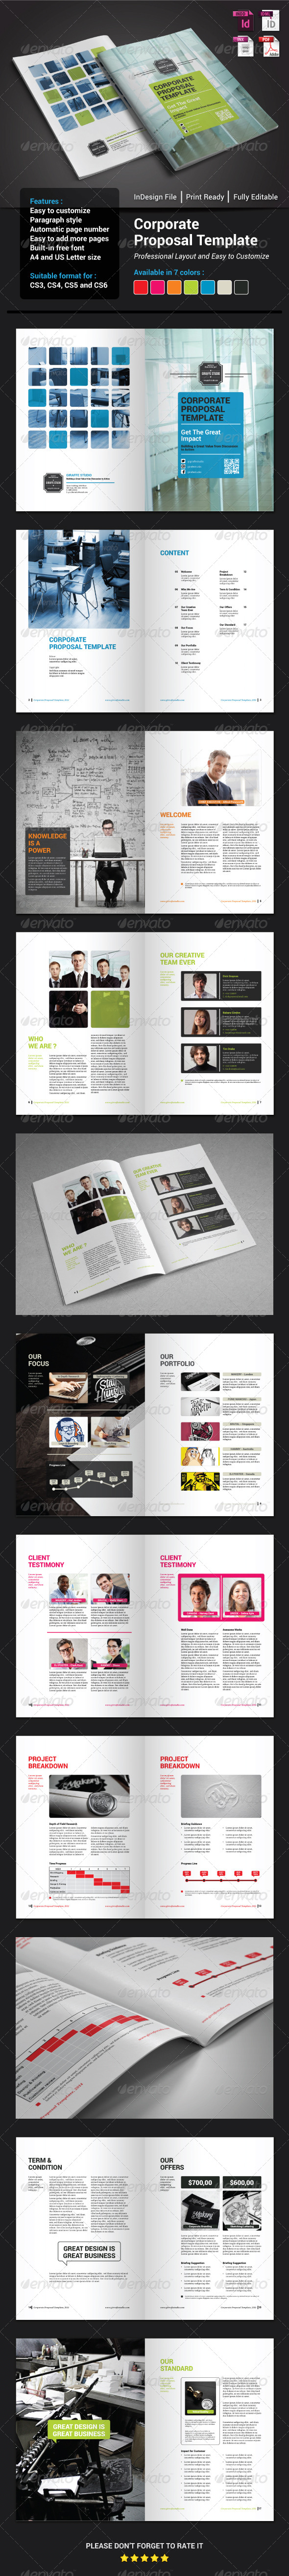 GraphicRiver Corporate Proposal Template 7724875